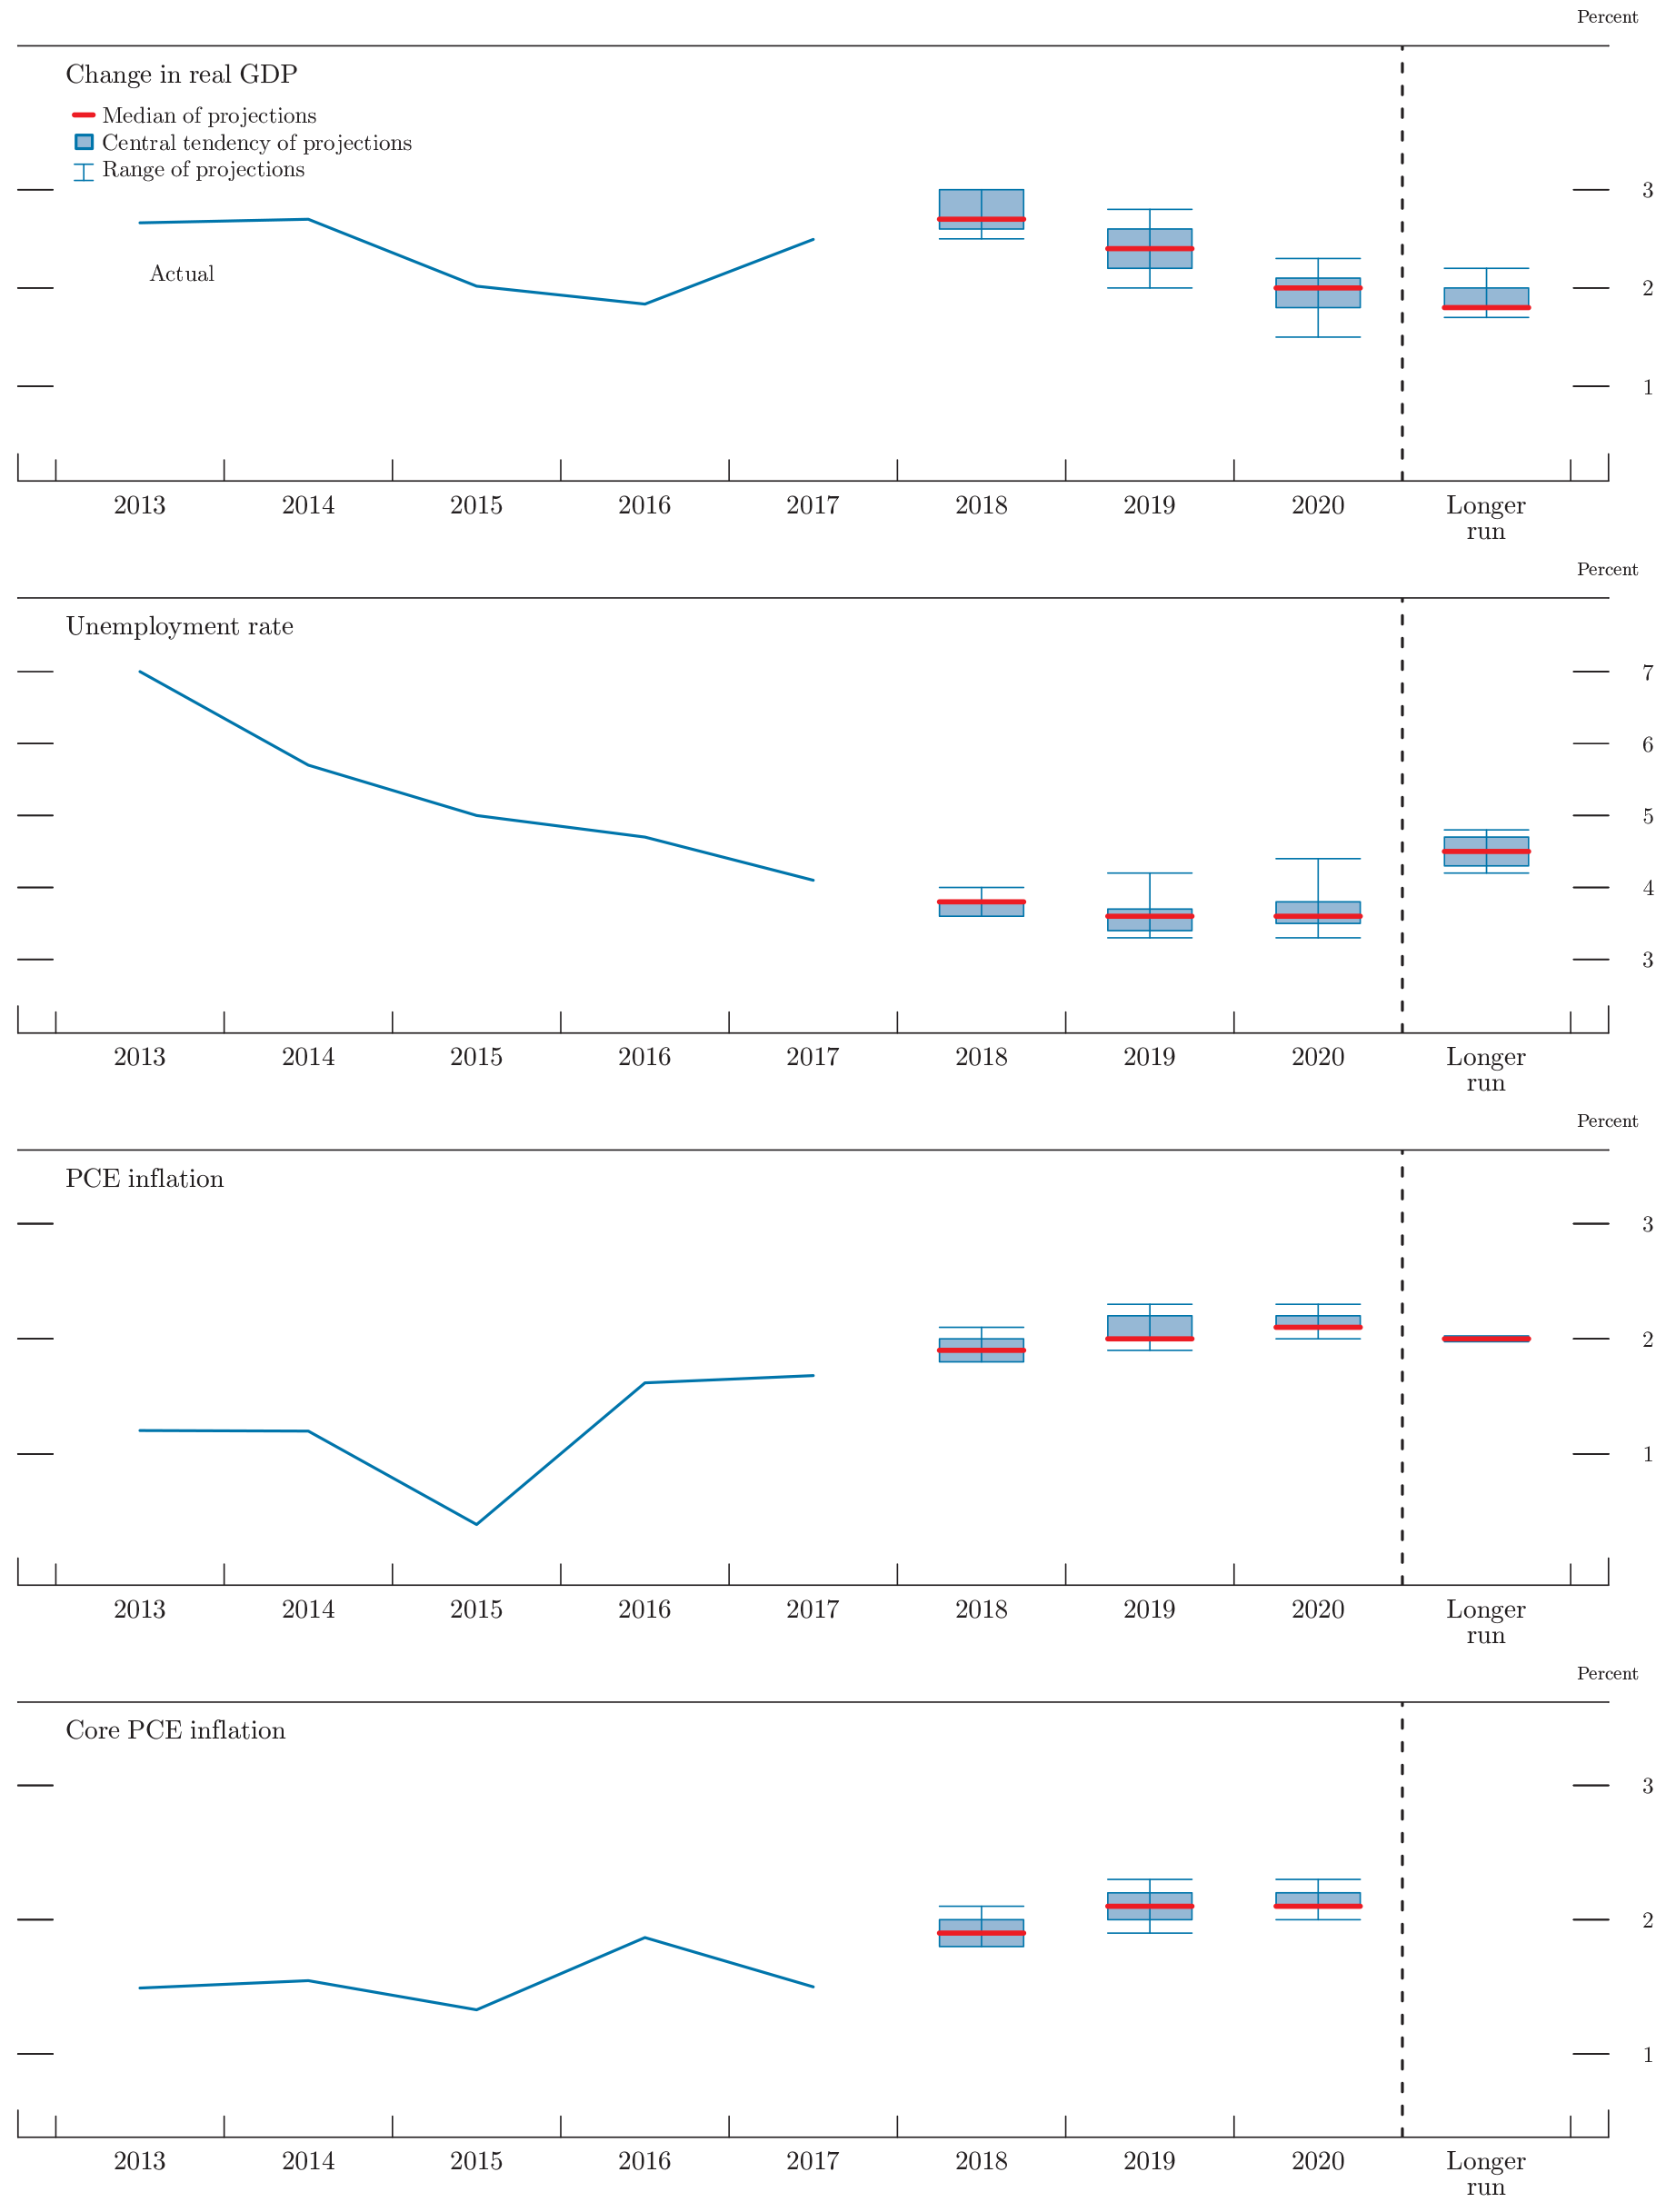 Figure 1. Medians, central tendencies, and ranges of economic projections, 2018-20 and over the longer run. See accessible link for data.